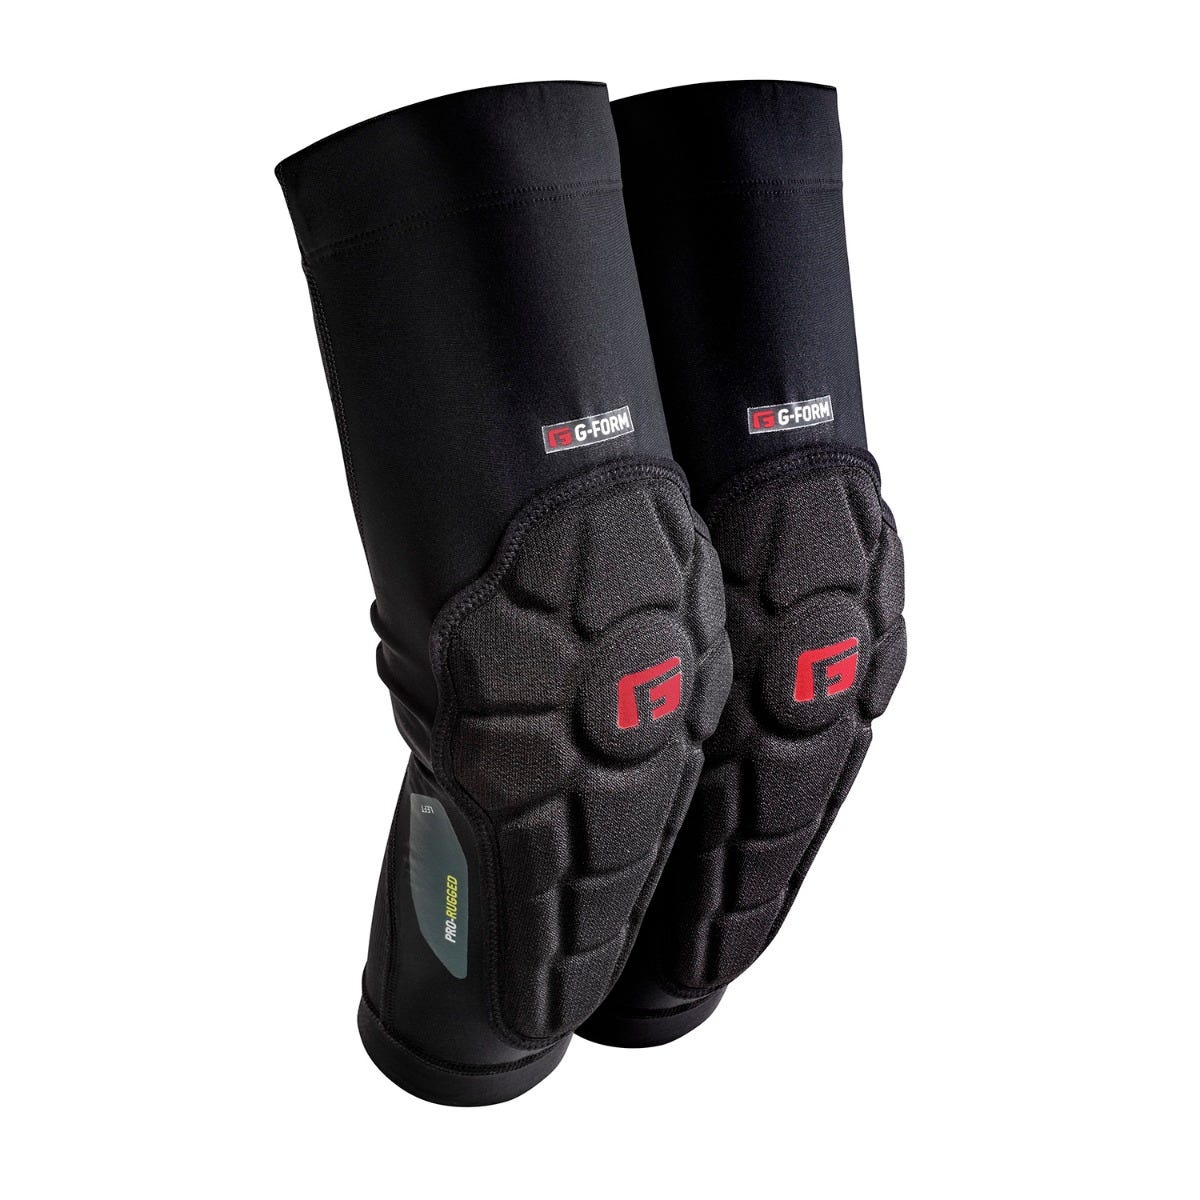 Pro-Rugged Elbow guard